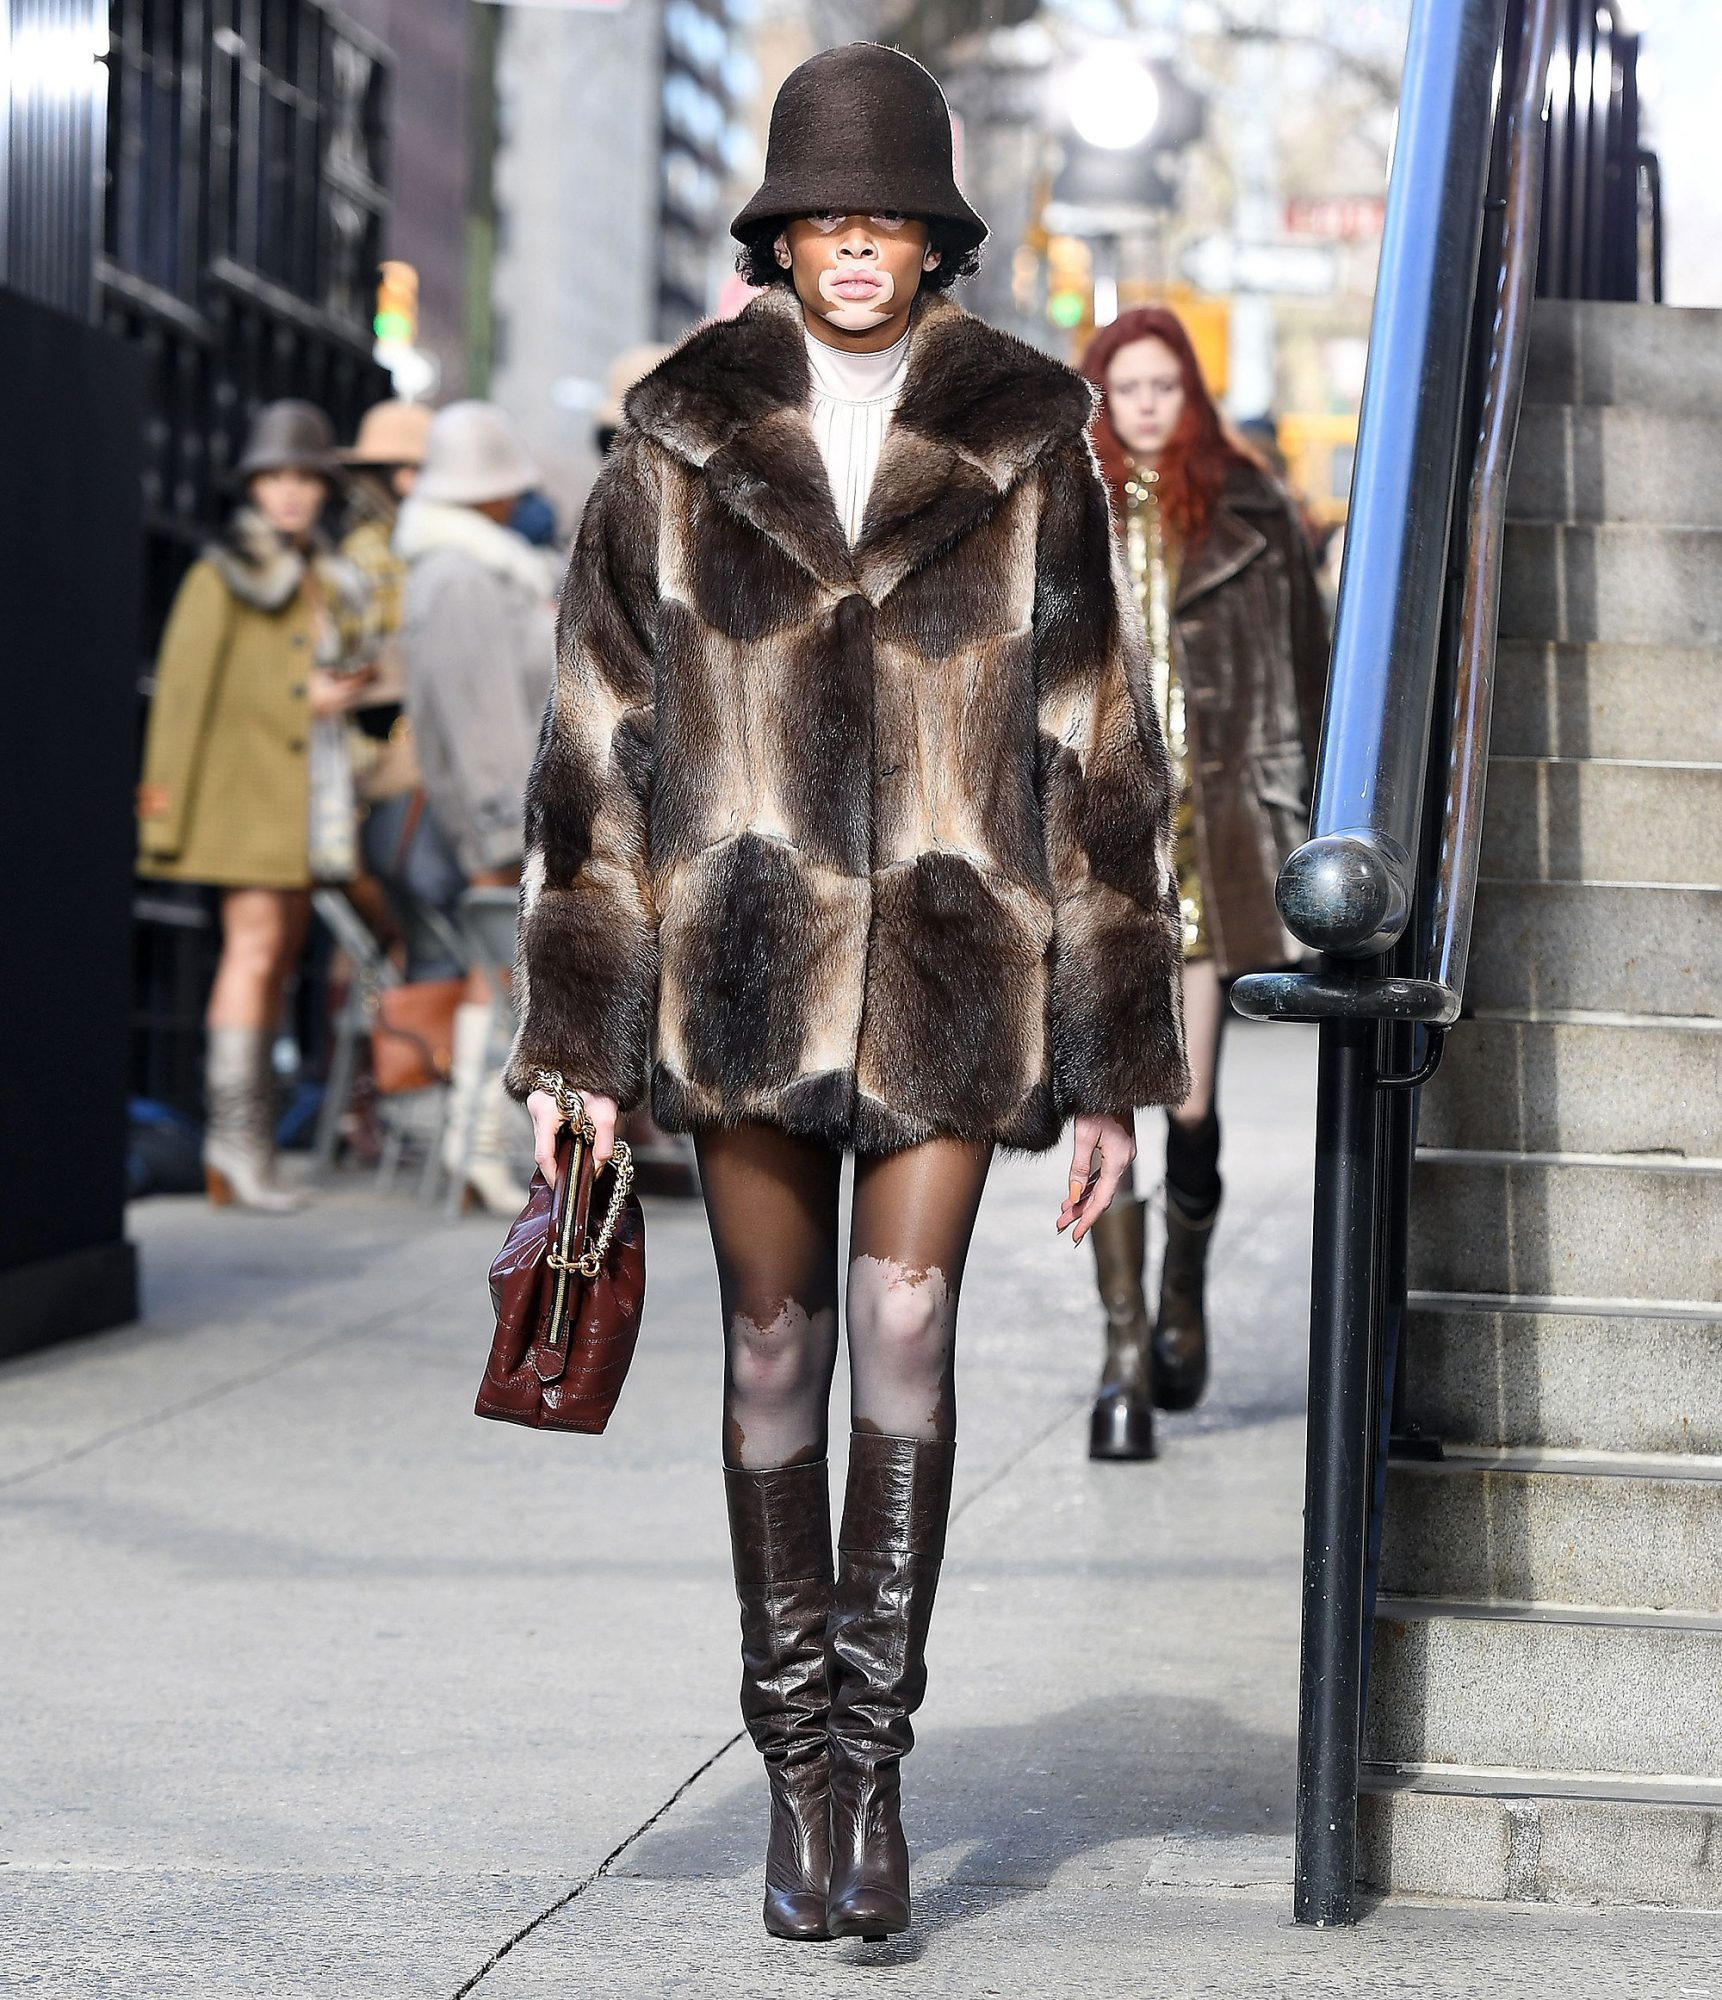 Model Winnie Harlow walks the runway for the Marc Jacobs collection during New York Fashion Week on February 16, 2017, in New York City. / AFP / Angela Weiss (Photo credit should read ANGELA WEISS/AFP/Getty Images)